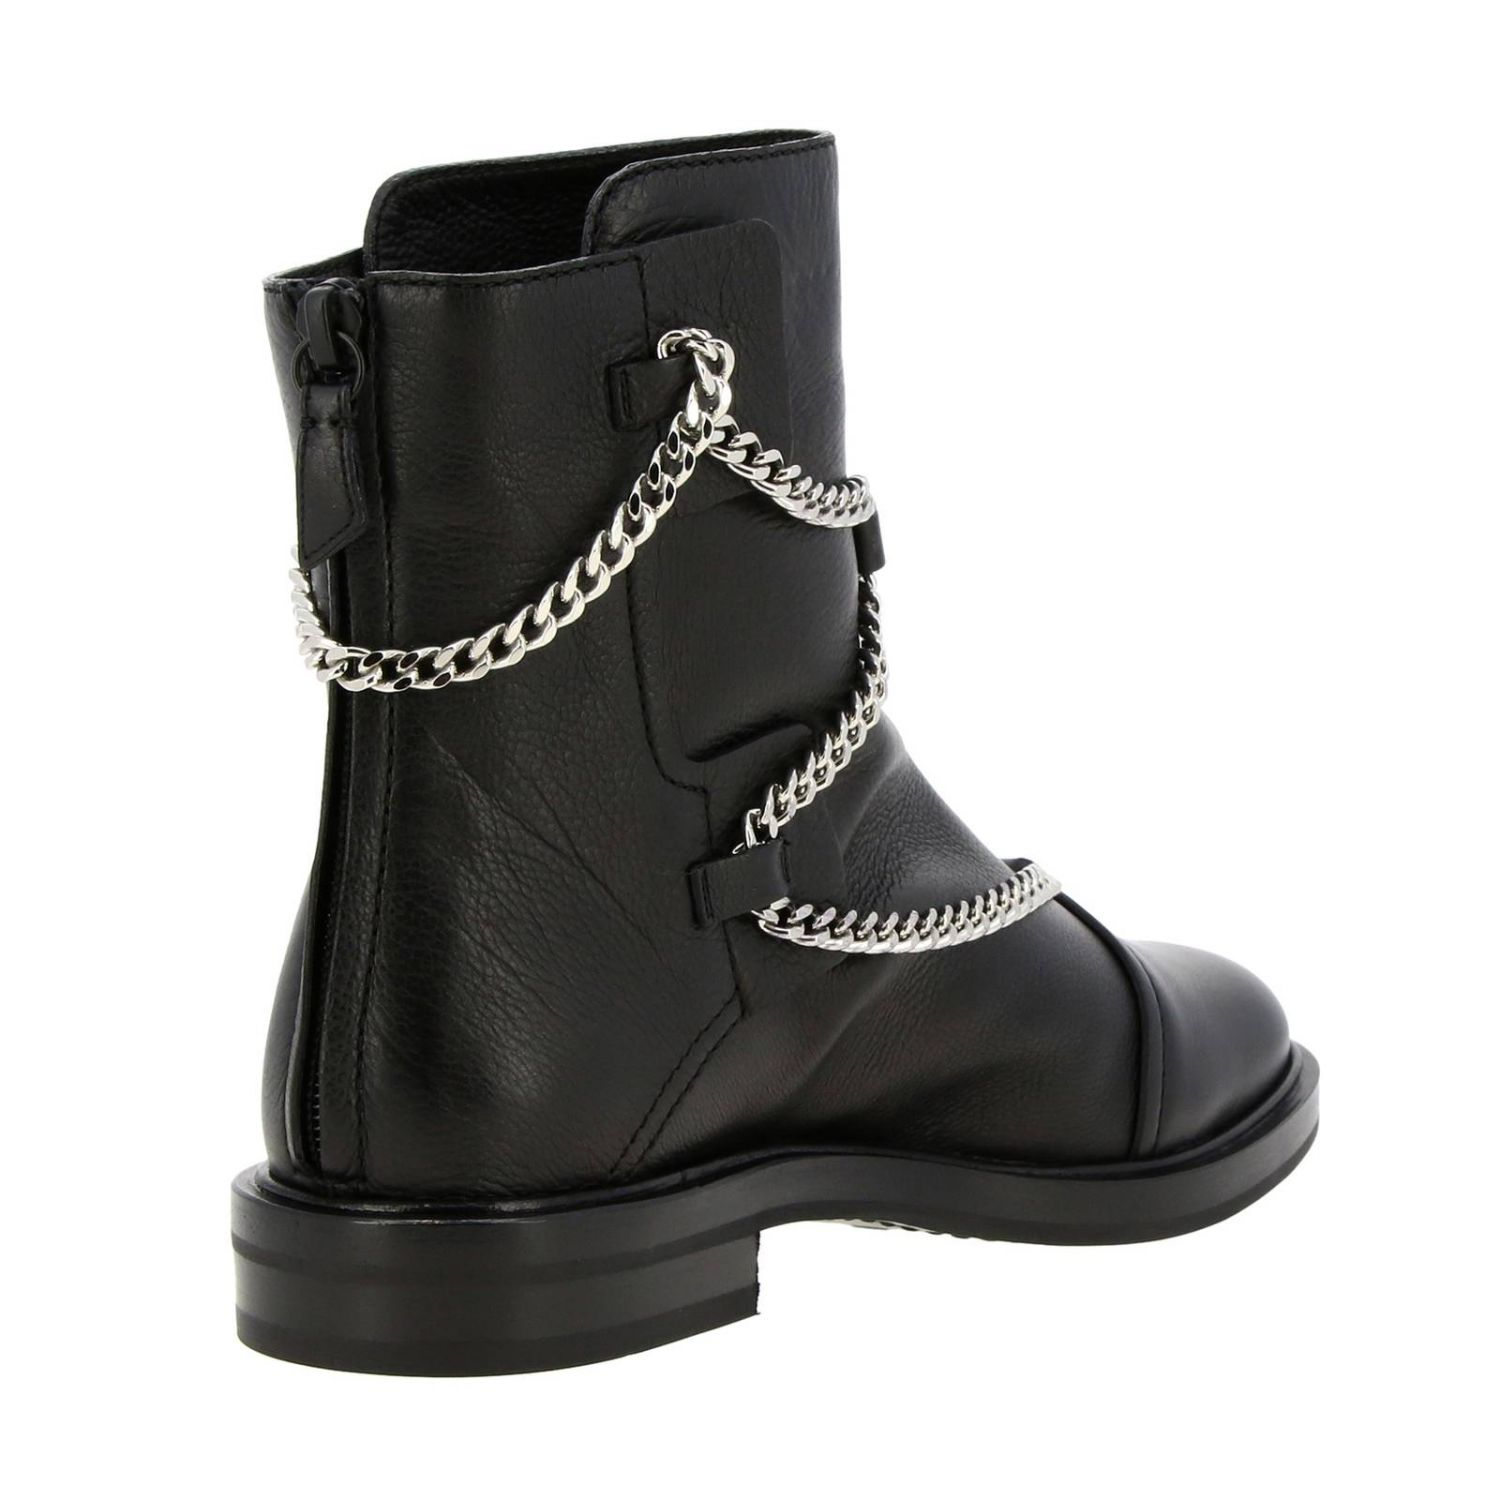 Tango Casadei biker boots in leather with metal chains black 4